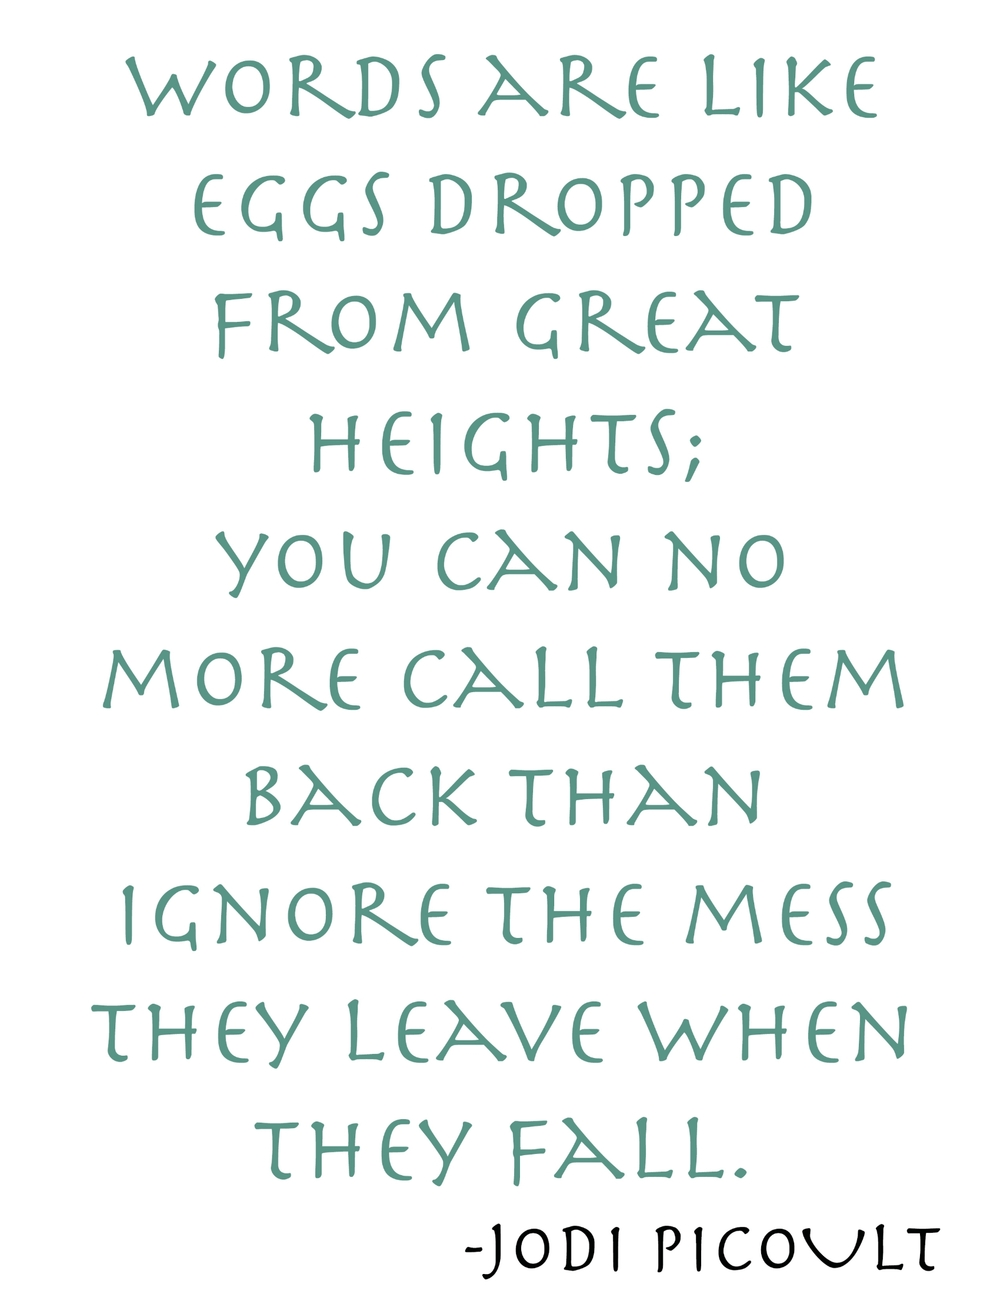 Words are like eggs dropped from great heights;  you can no more call them back than ignore the mess they leave when they fall.